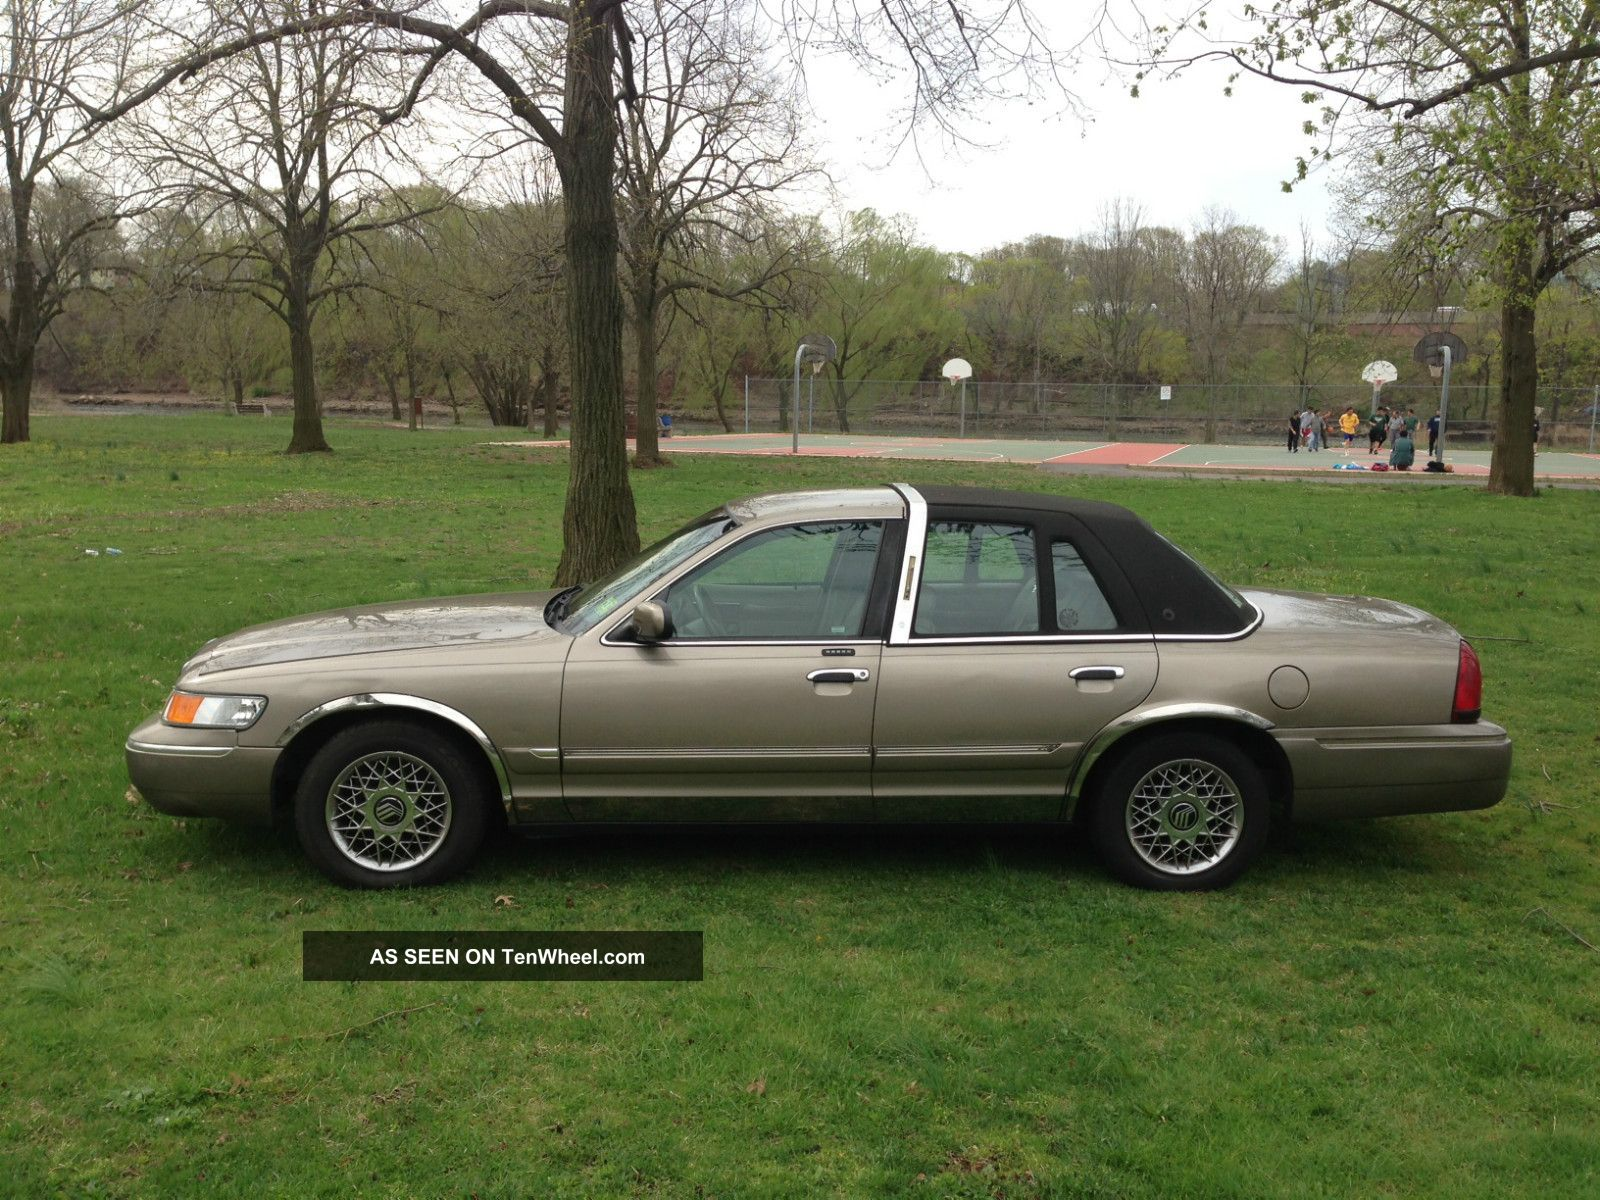 2001 Mercury Grand Marquis Gs Very Grand Marquis photo